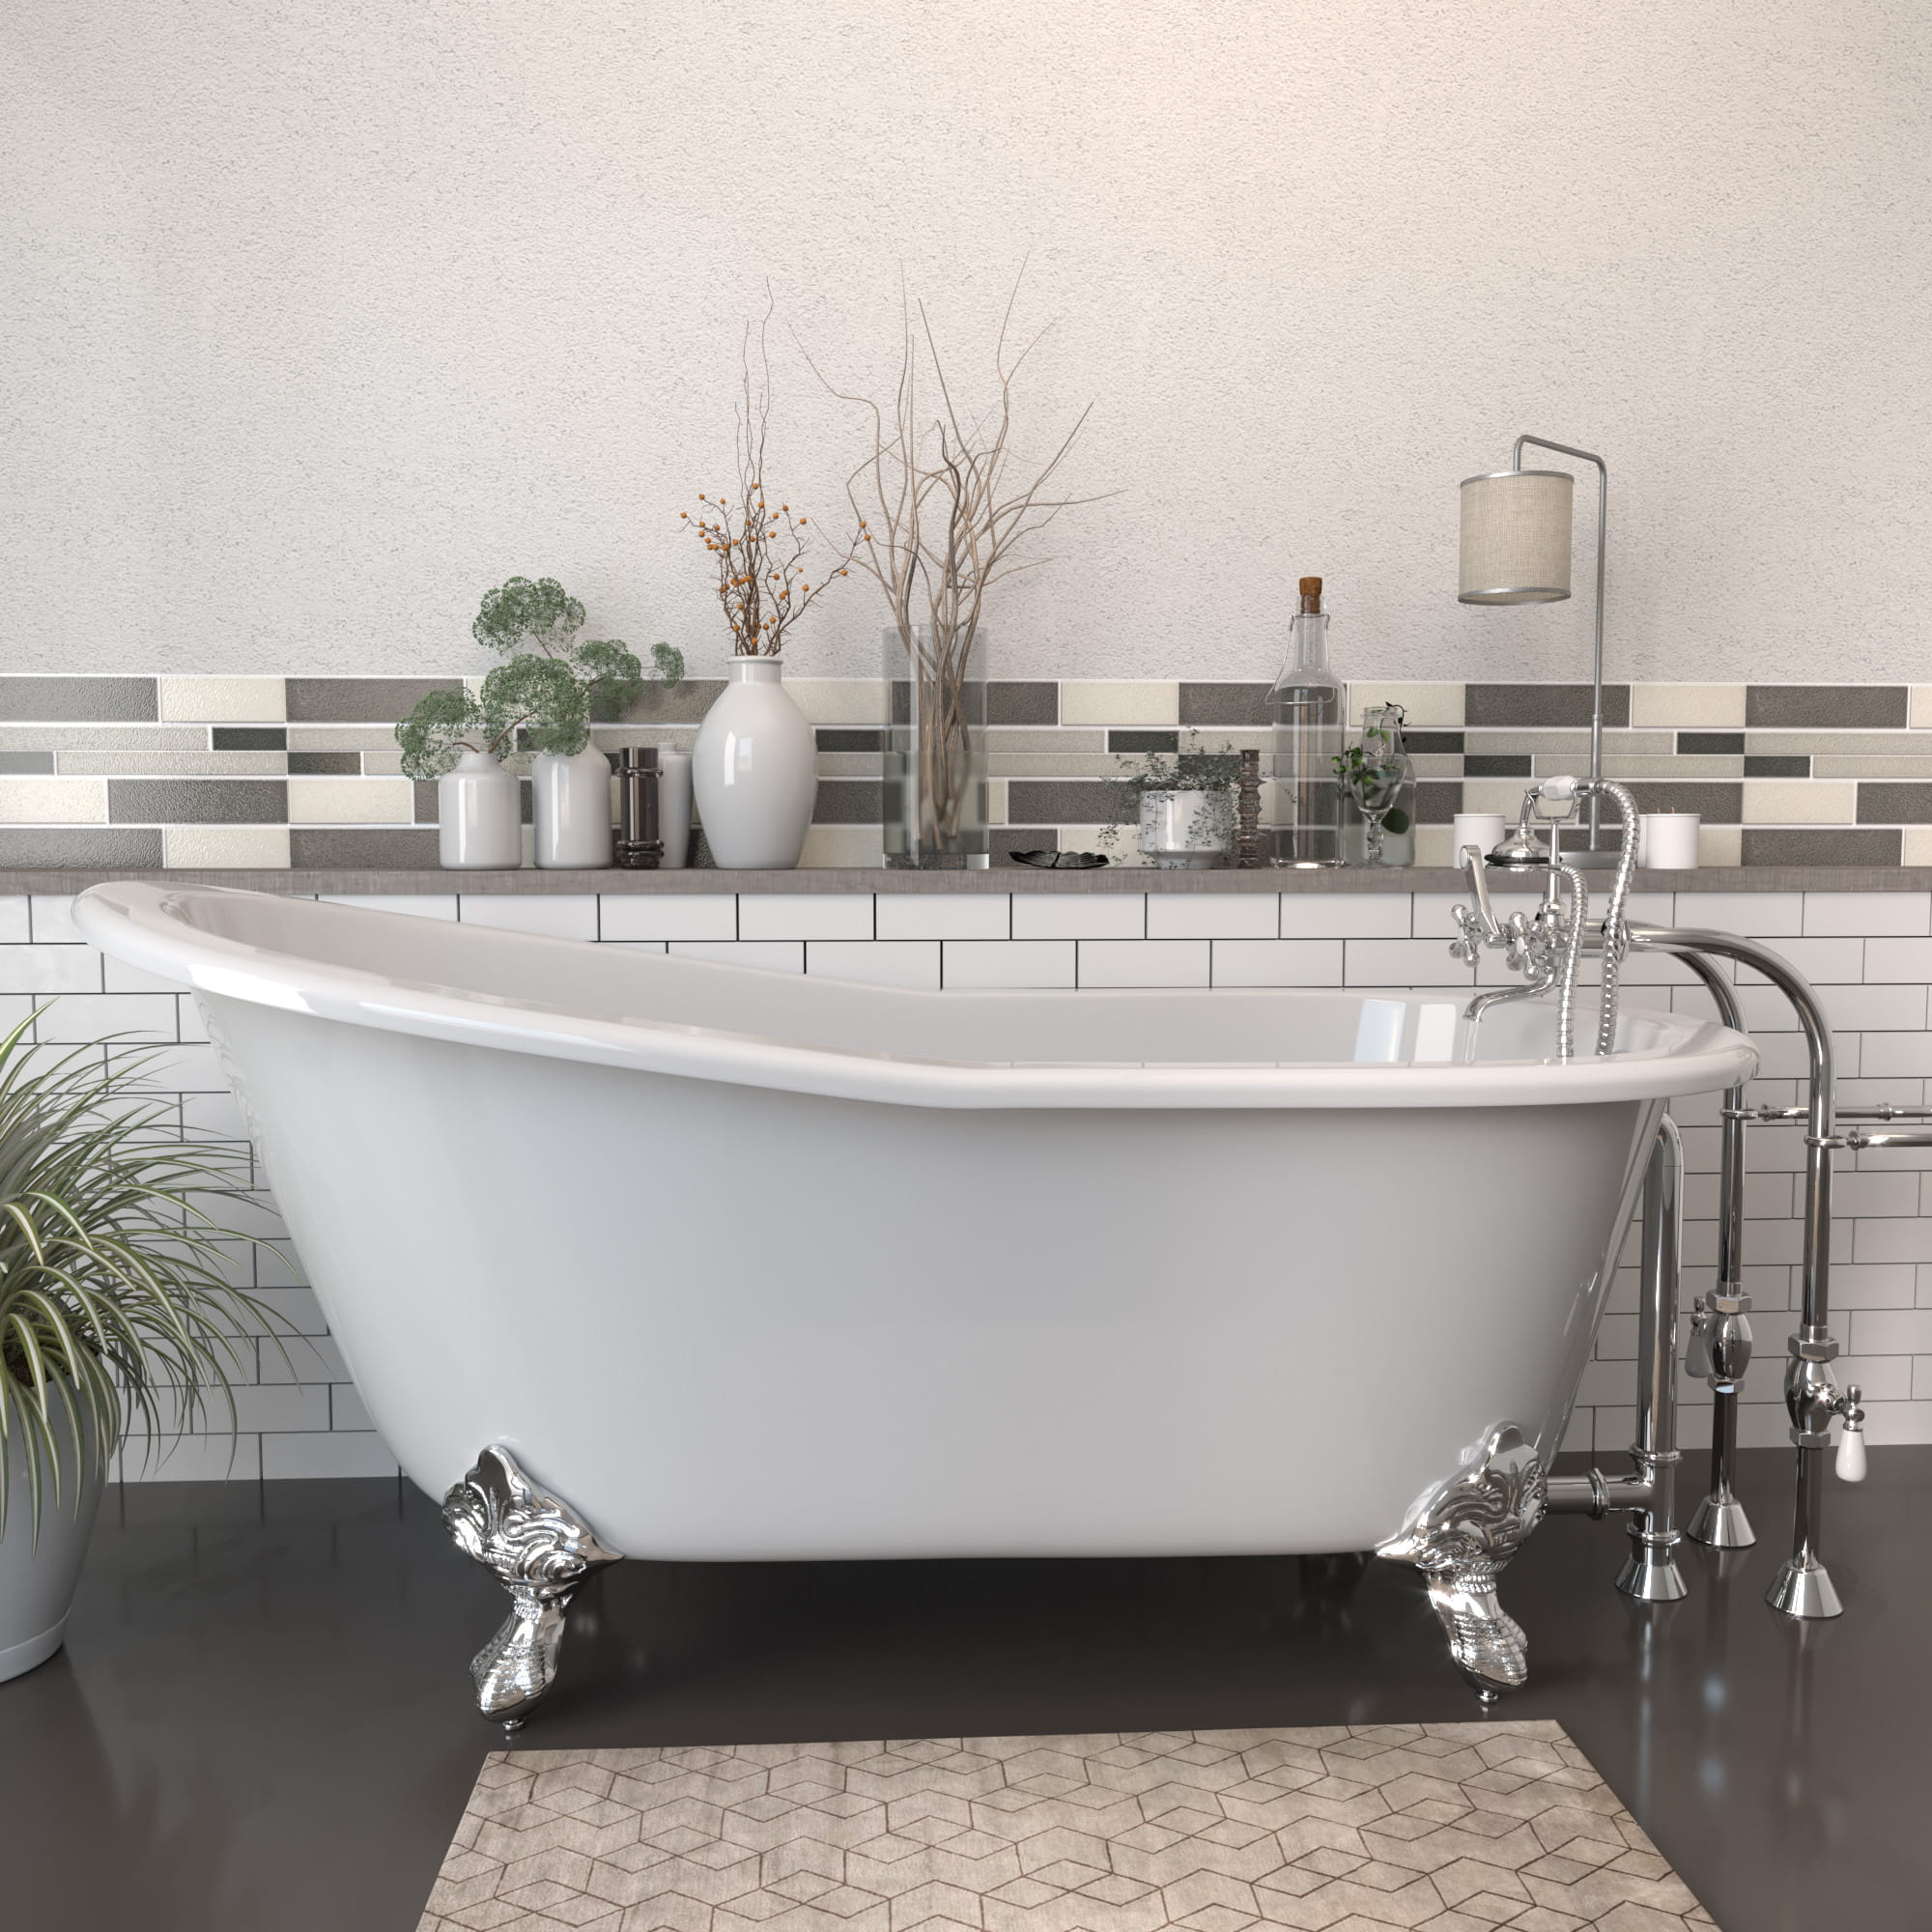 """Cast Iron Slipper Clawfoot Tub 67"""" X 30"""" with No Faucet Drillings and Complete Free Standing British Telephone Faucet and Hand Held Shower  Polished Chrome Package"""